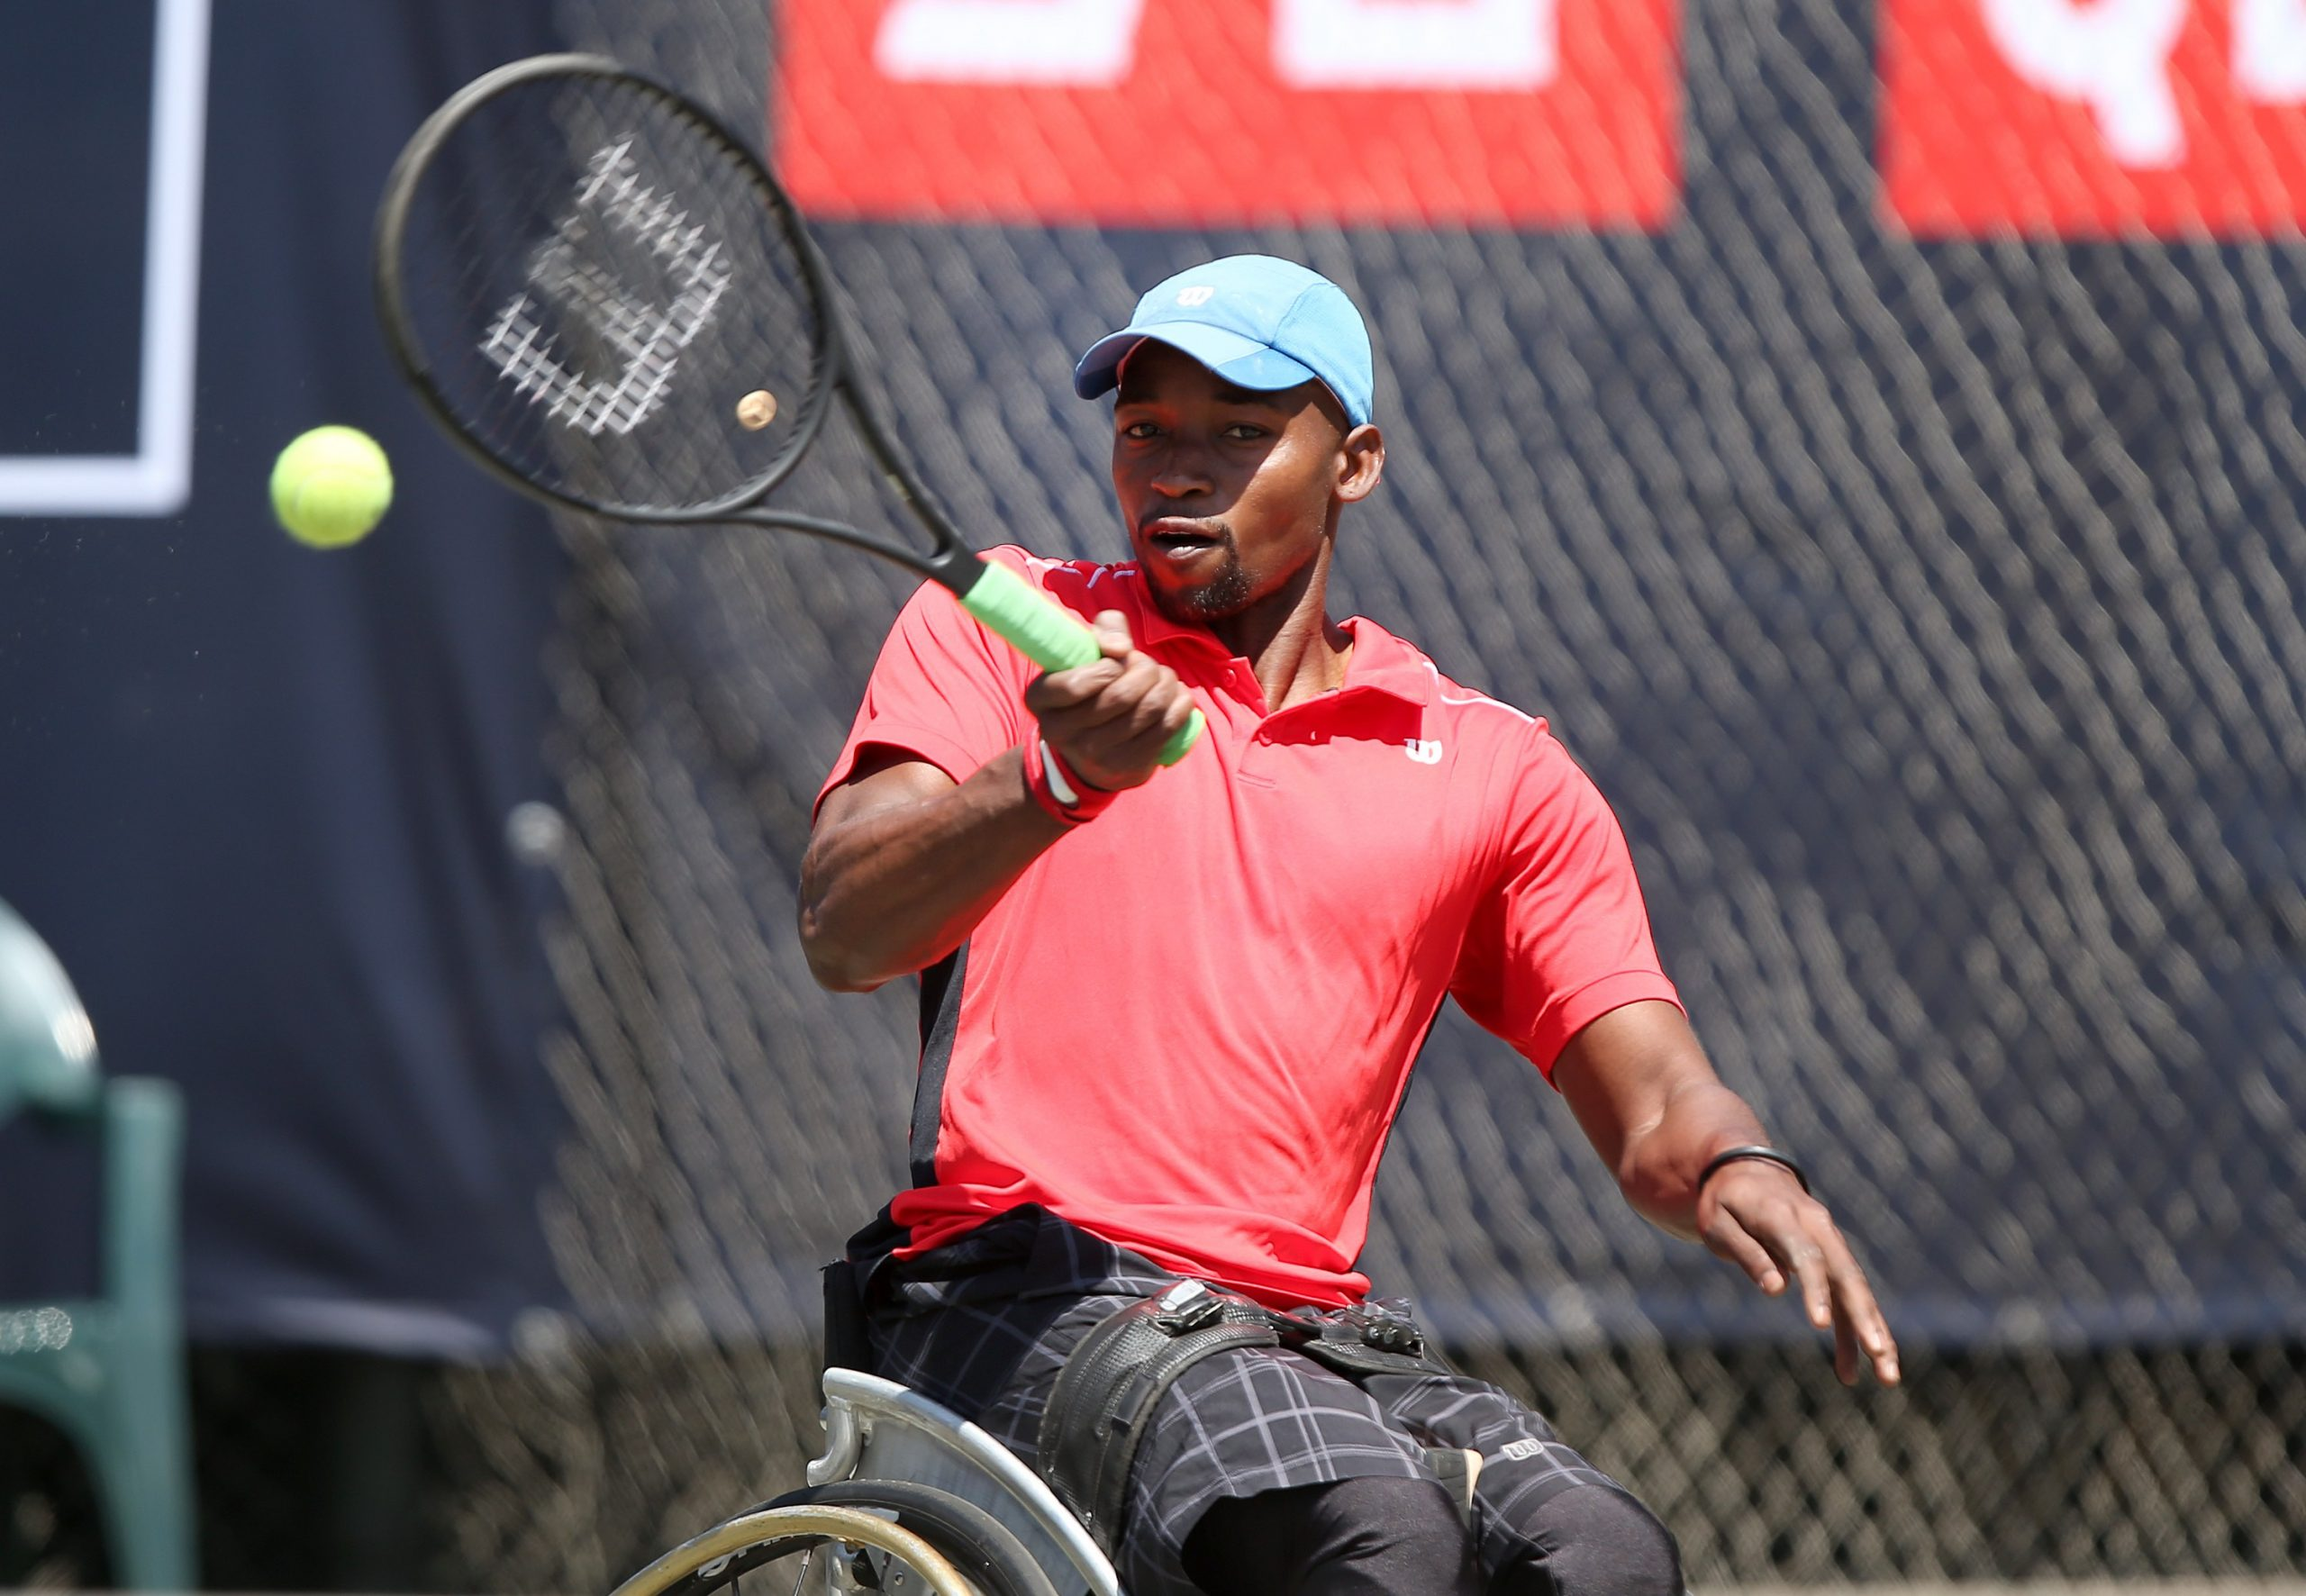 Maripa desperate to get back on court